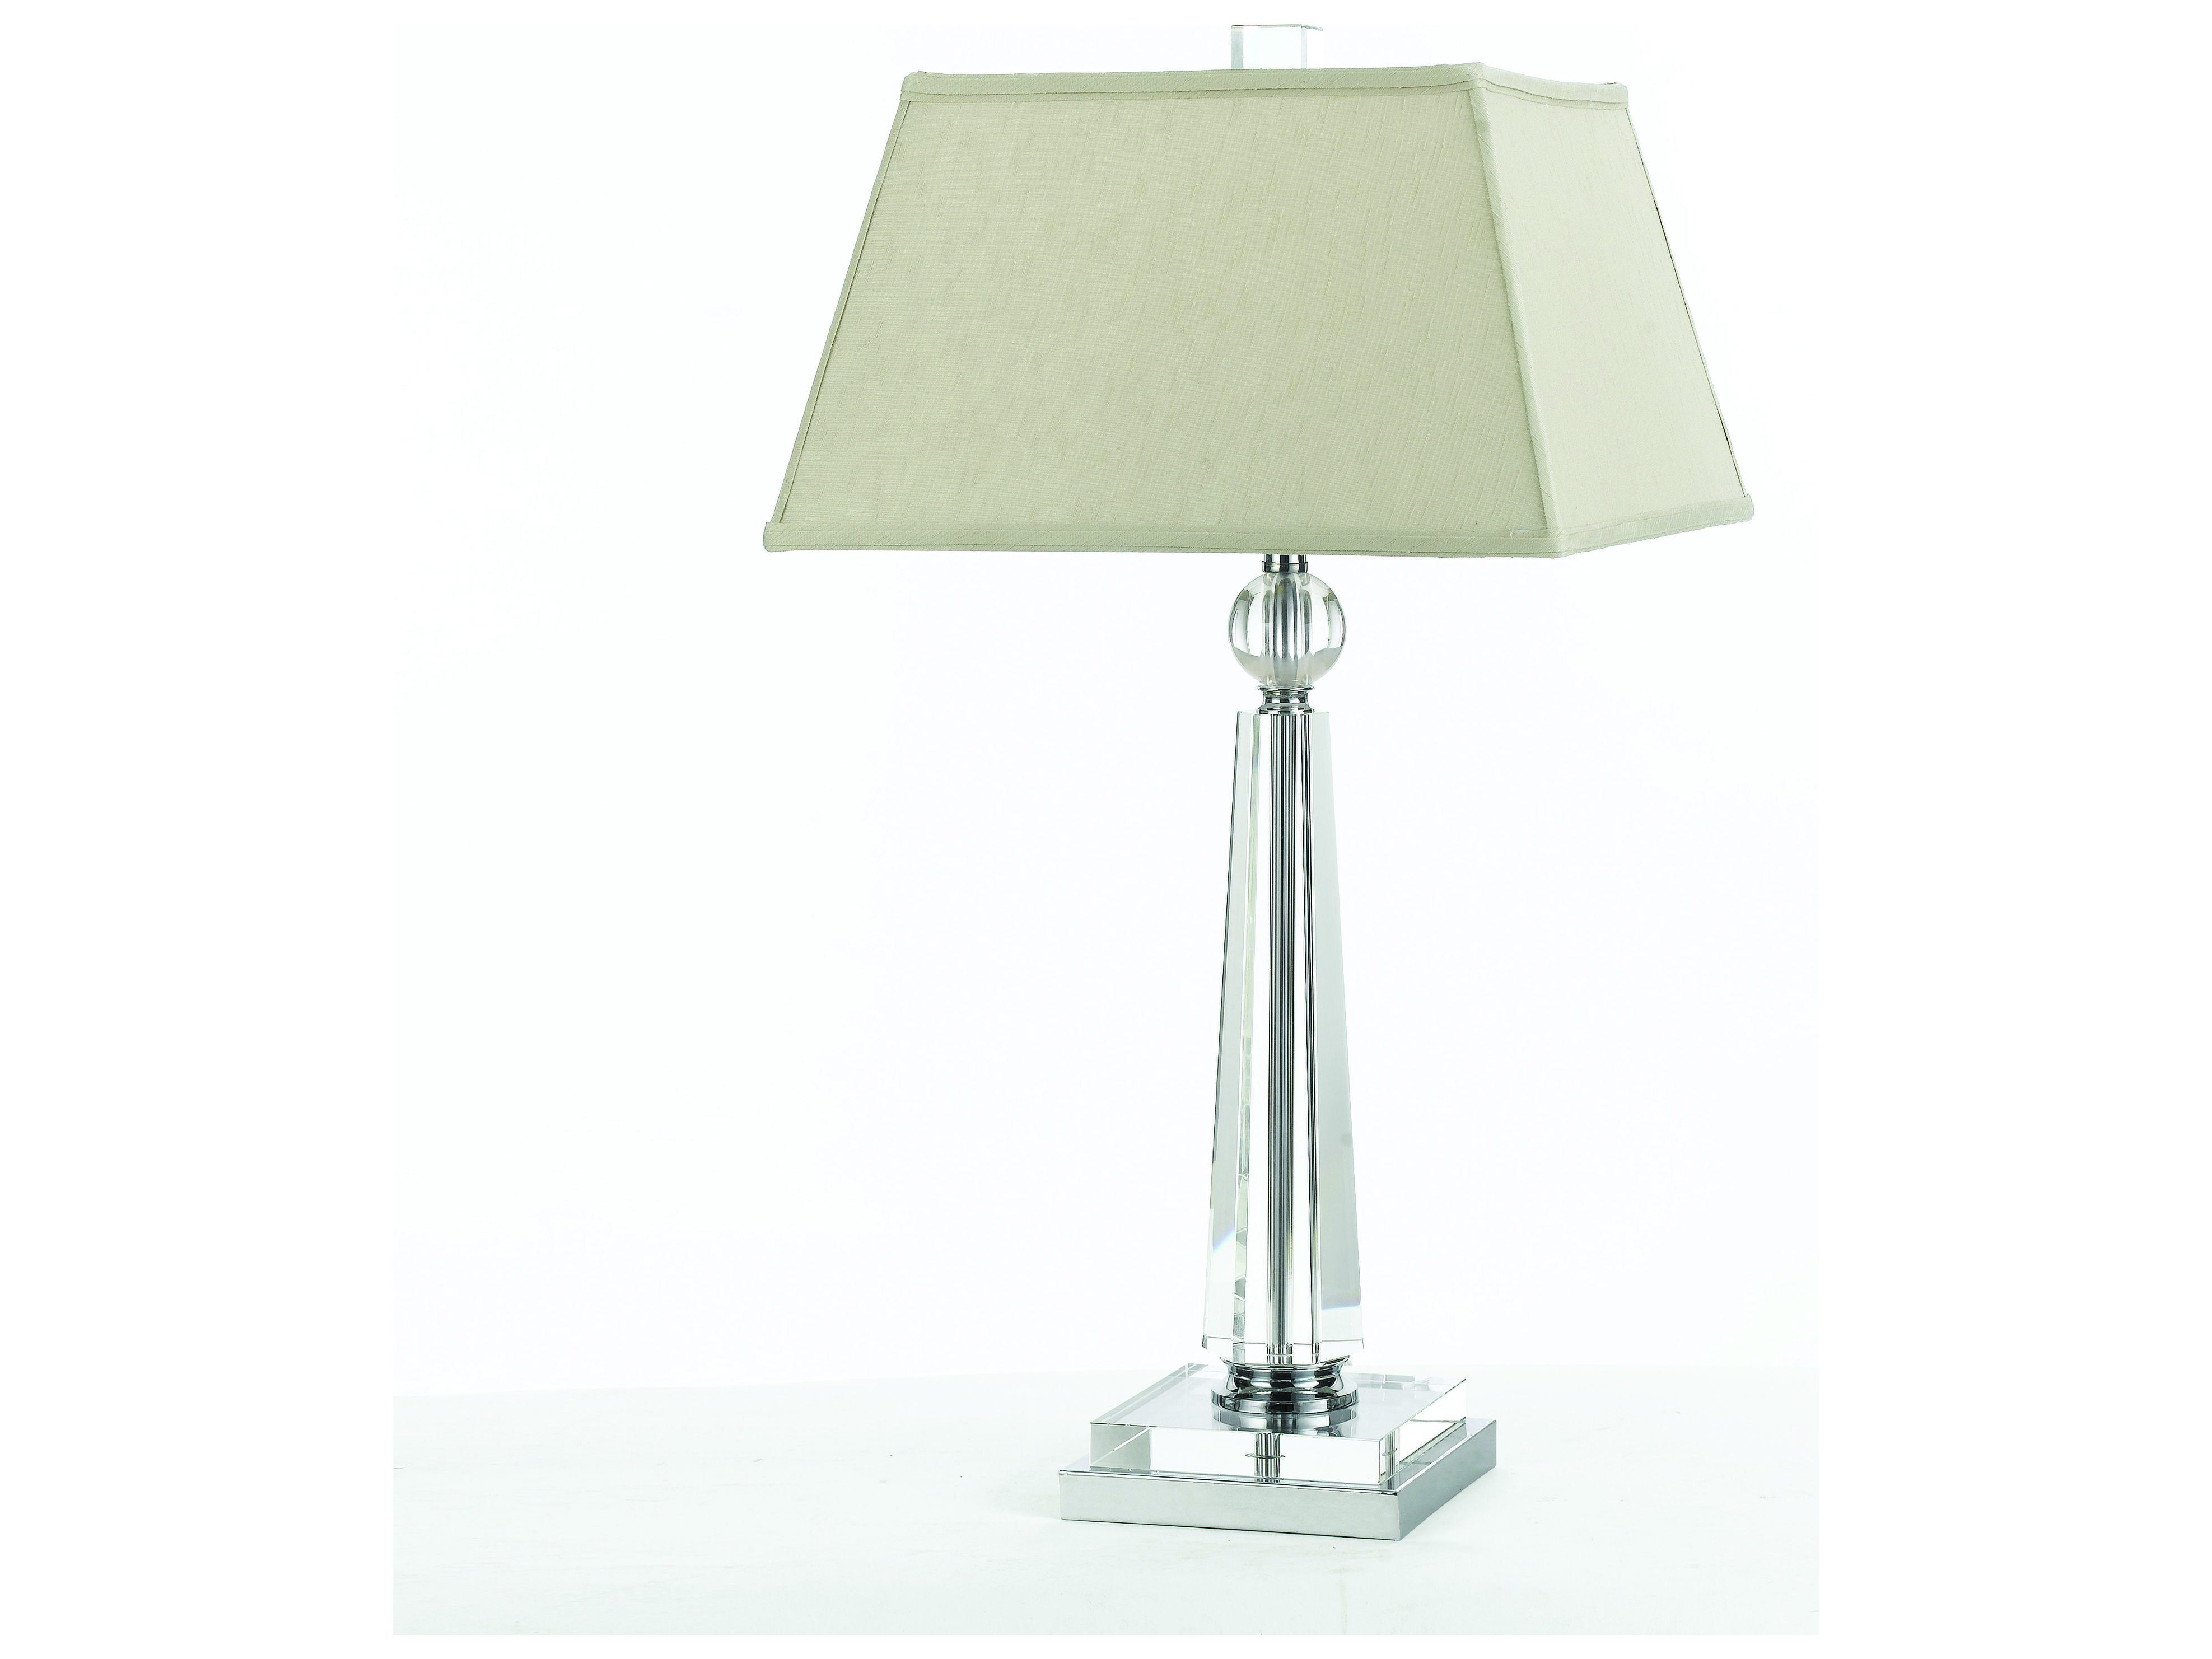 Af lighting candice olson chrome table lamp 8211 tl lamps af lighting candice olson chrome table lamp 8211 tl aloadofball Gallery